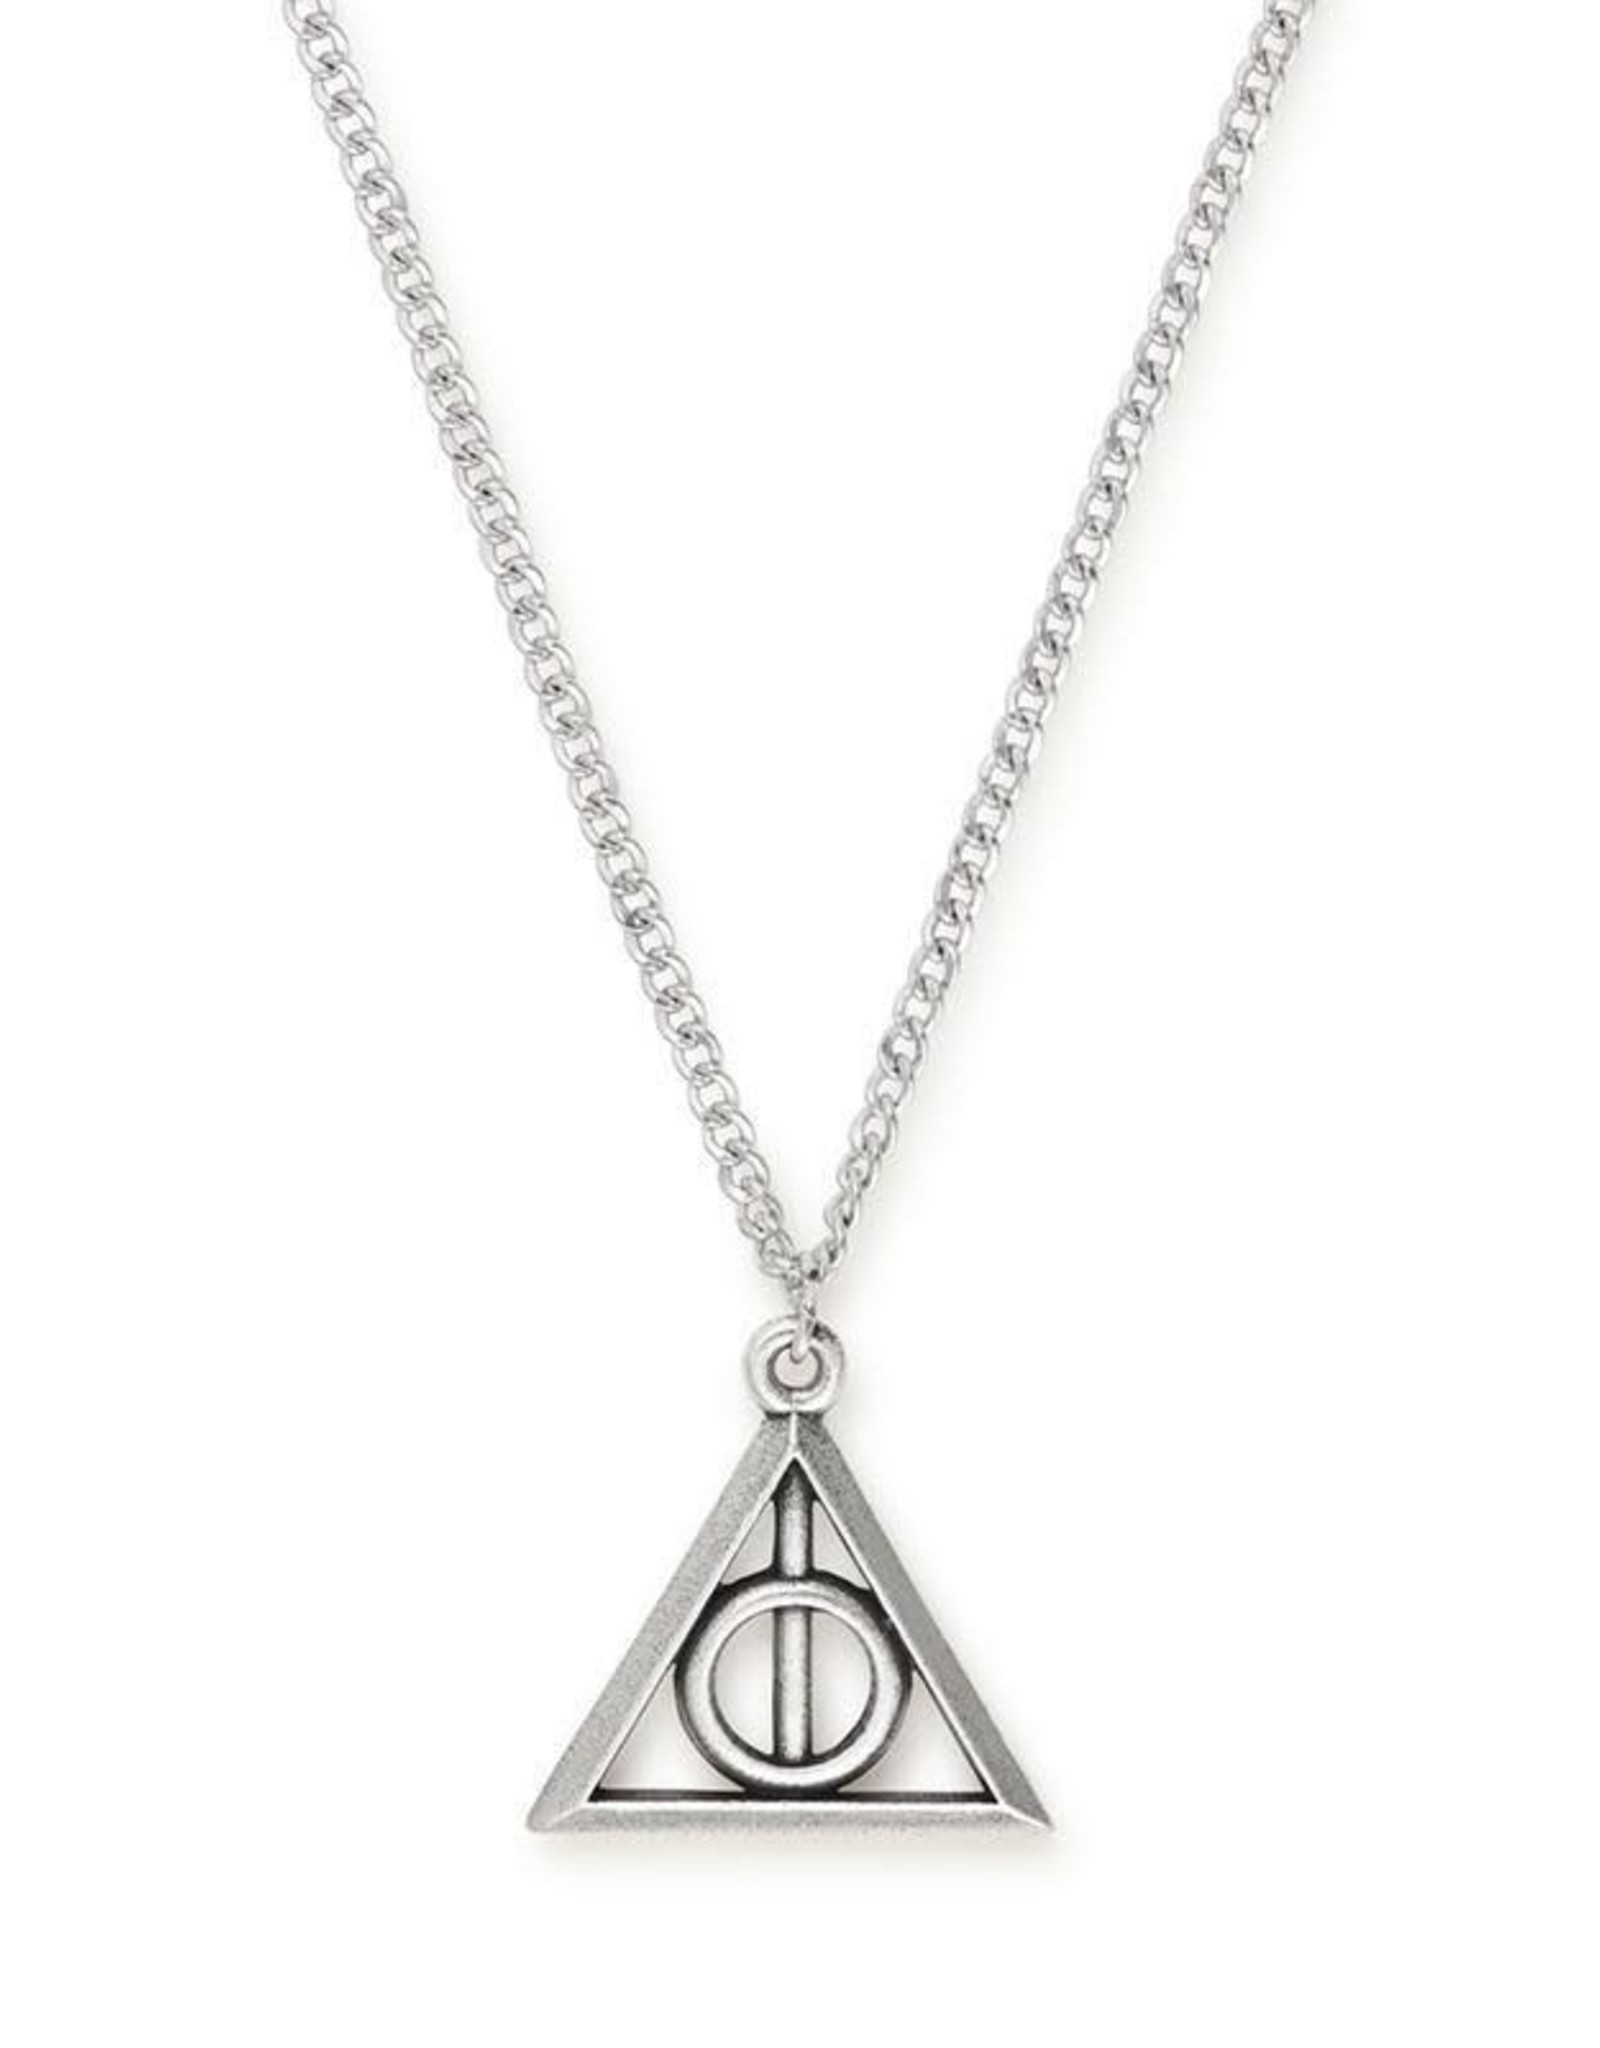 Alex and Ani Harry Potter, Deathly Hallows 24in Necklace Silver